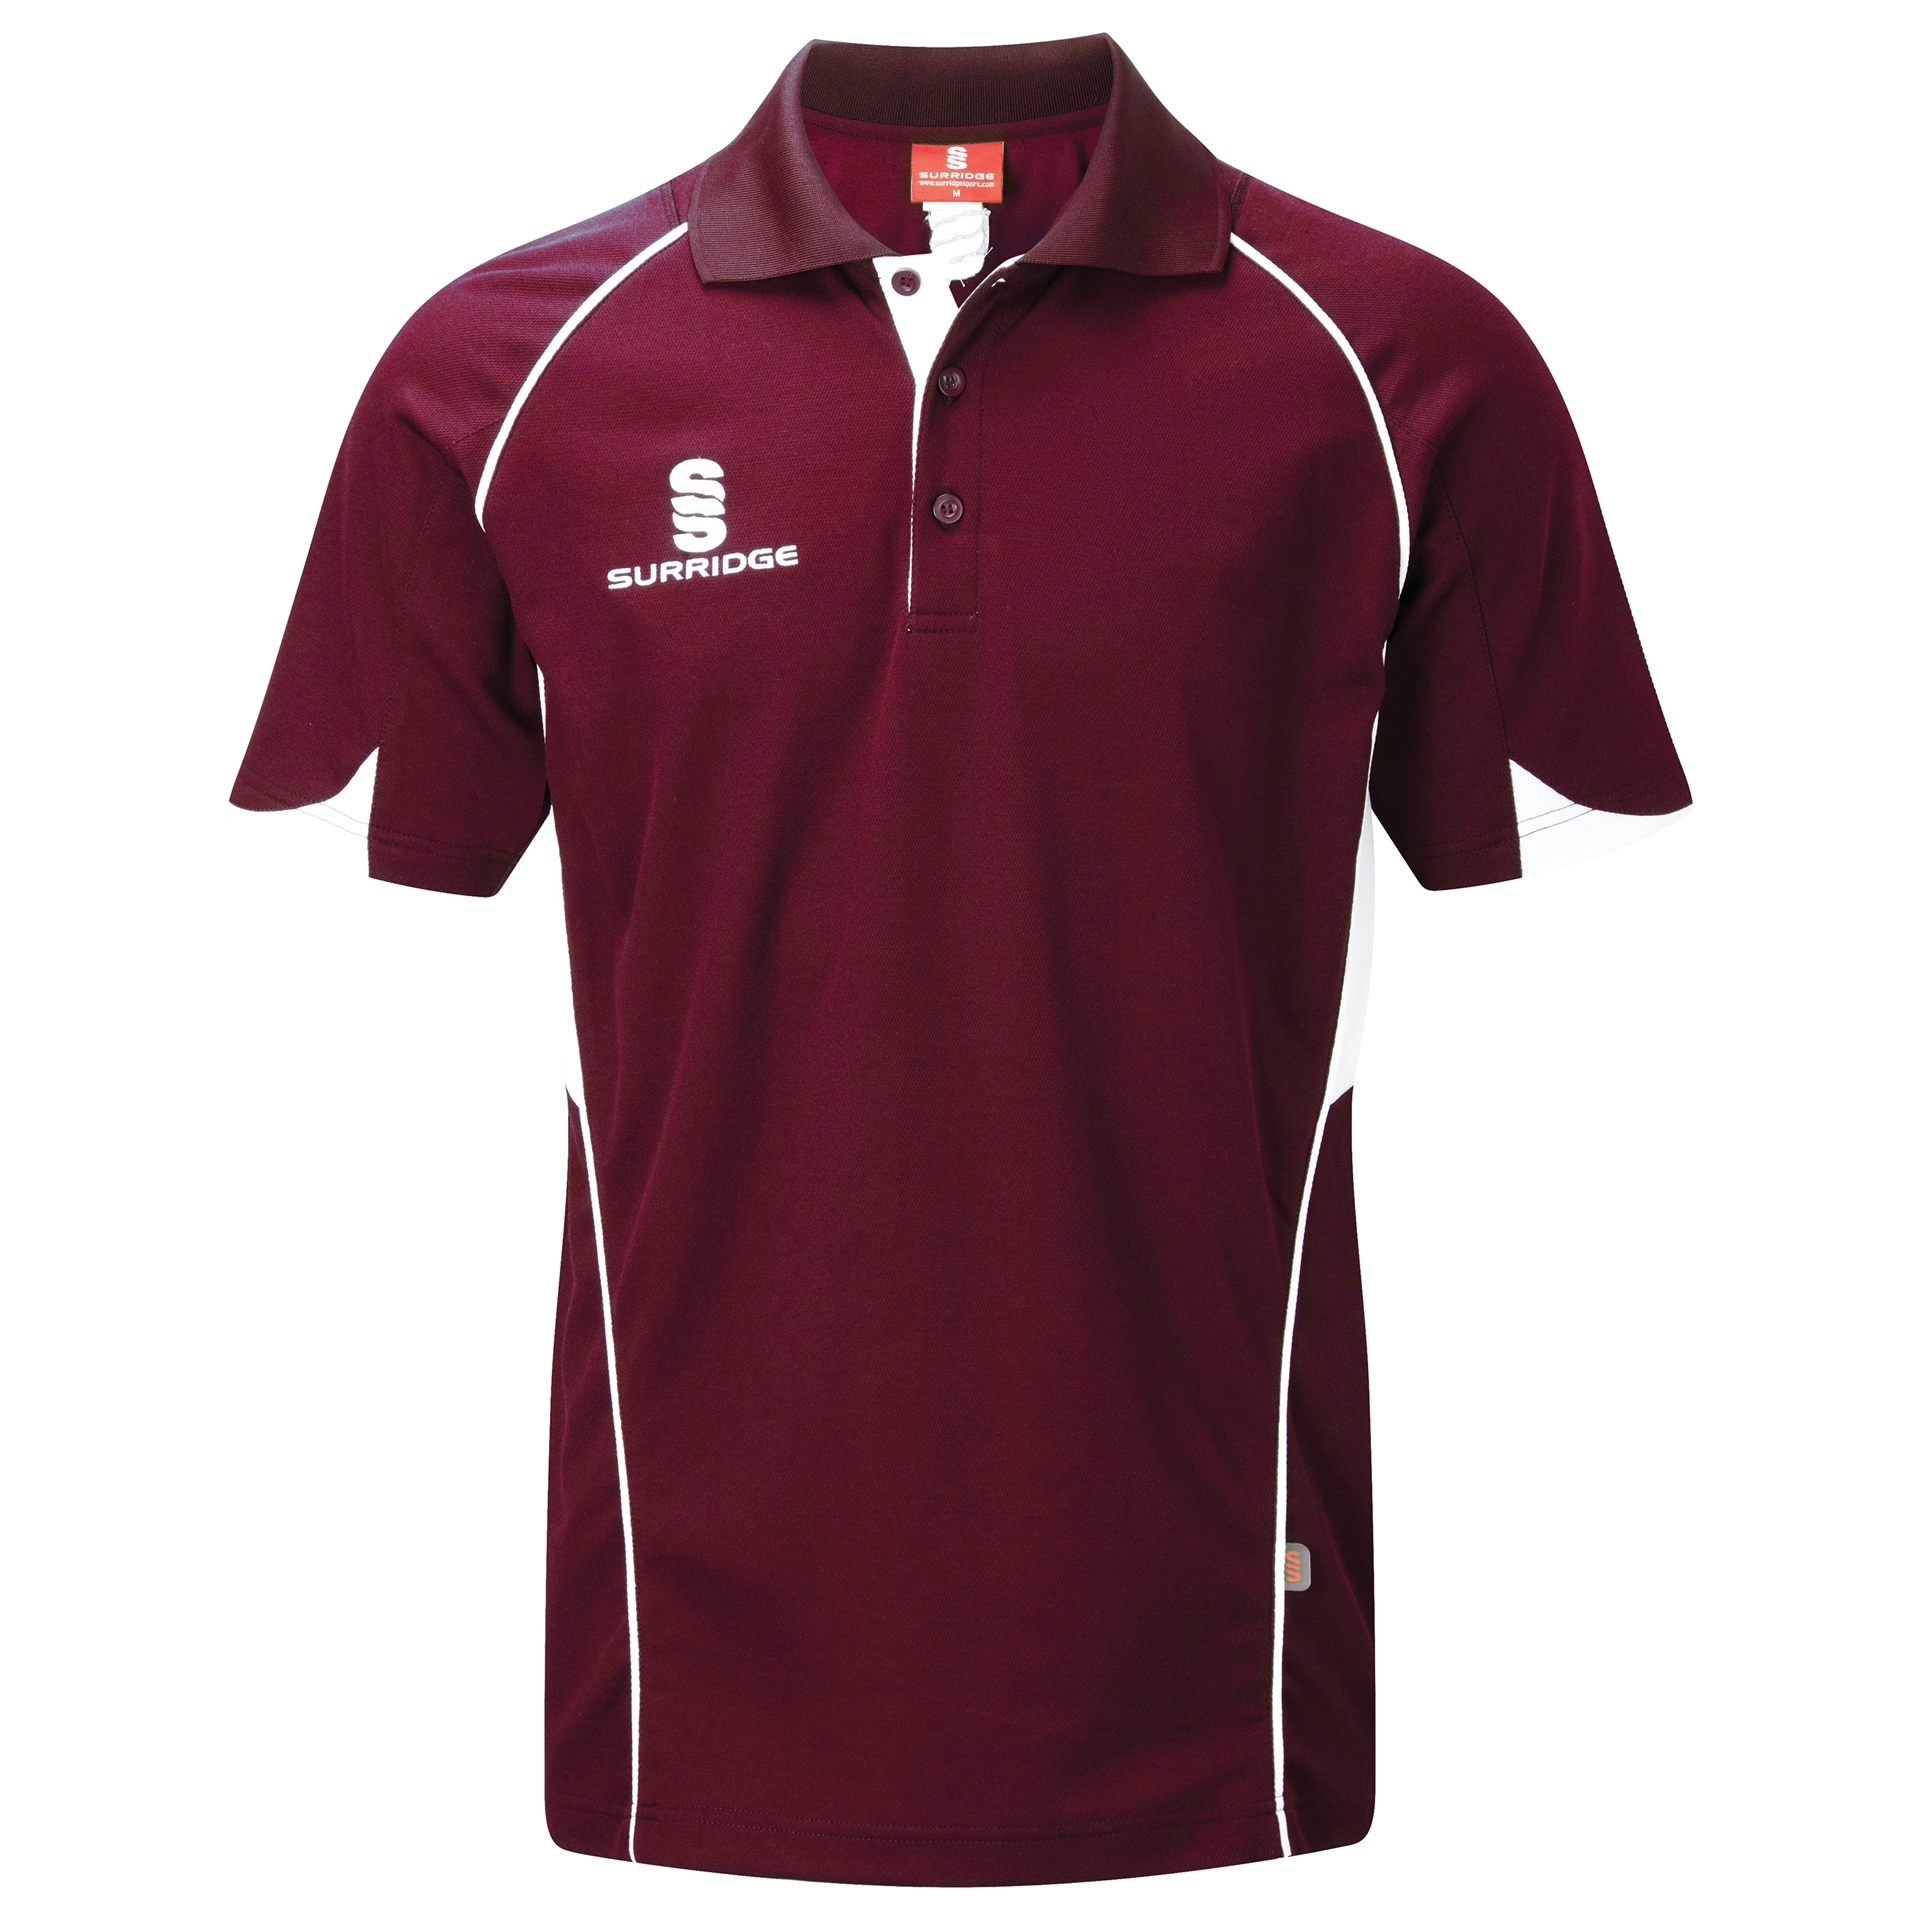 Surridge Sport - Curve Polo Shirt - Maroon/White